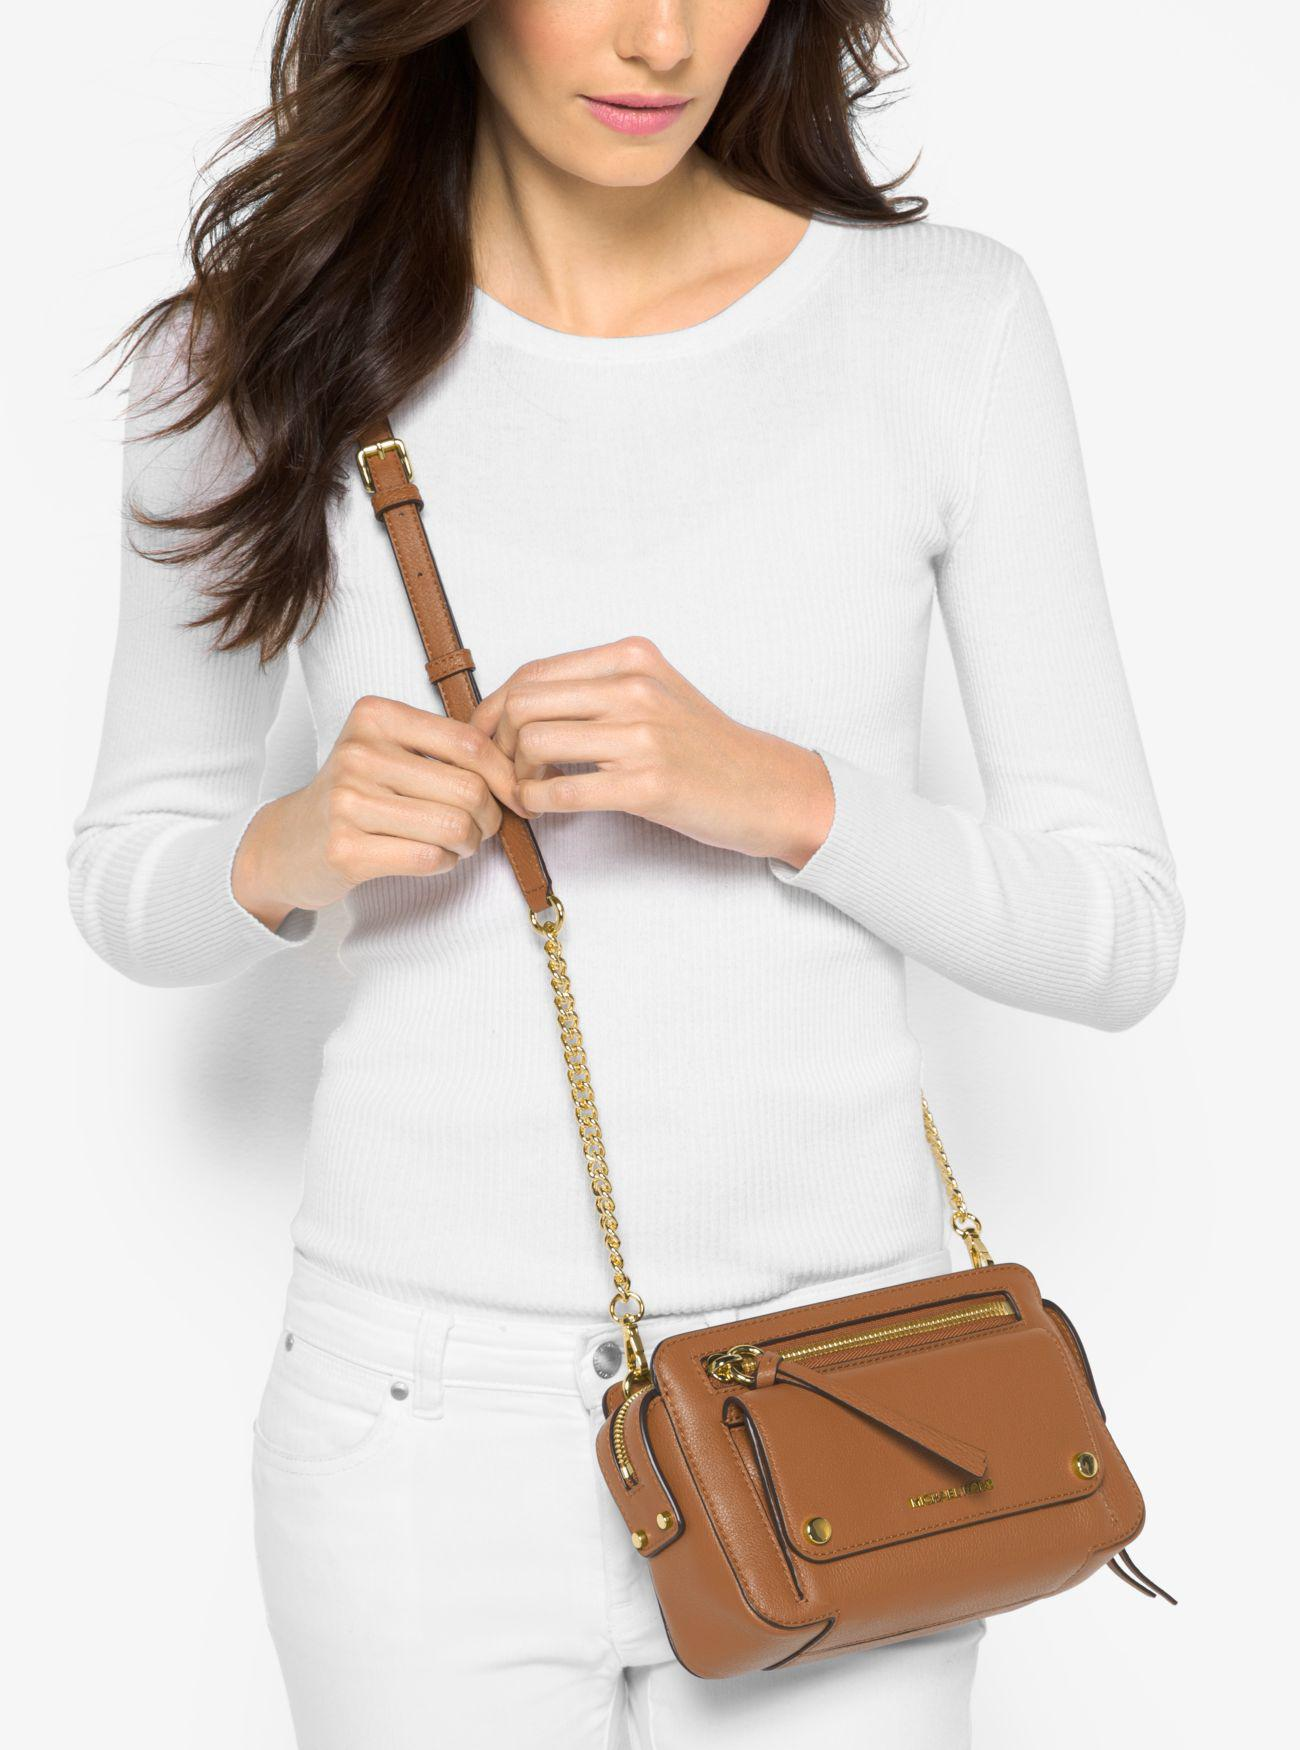 2032c18f01c8 Lyst - Michael Kors Mitchell Medium Leather Crossbody Bag